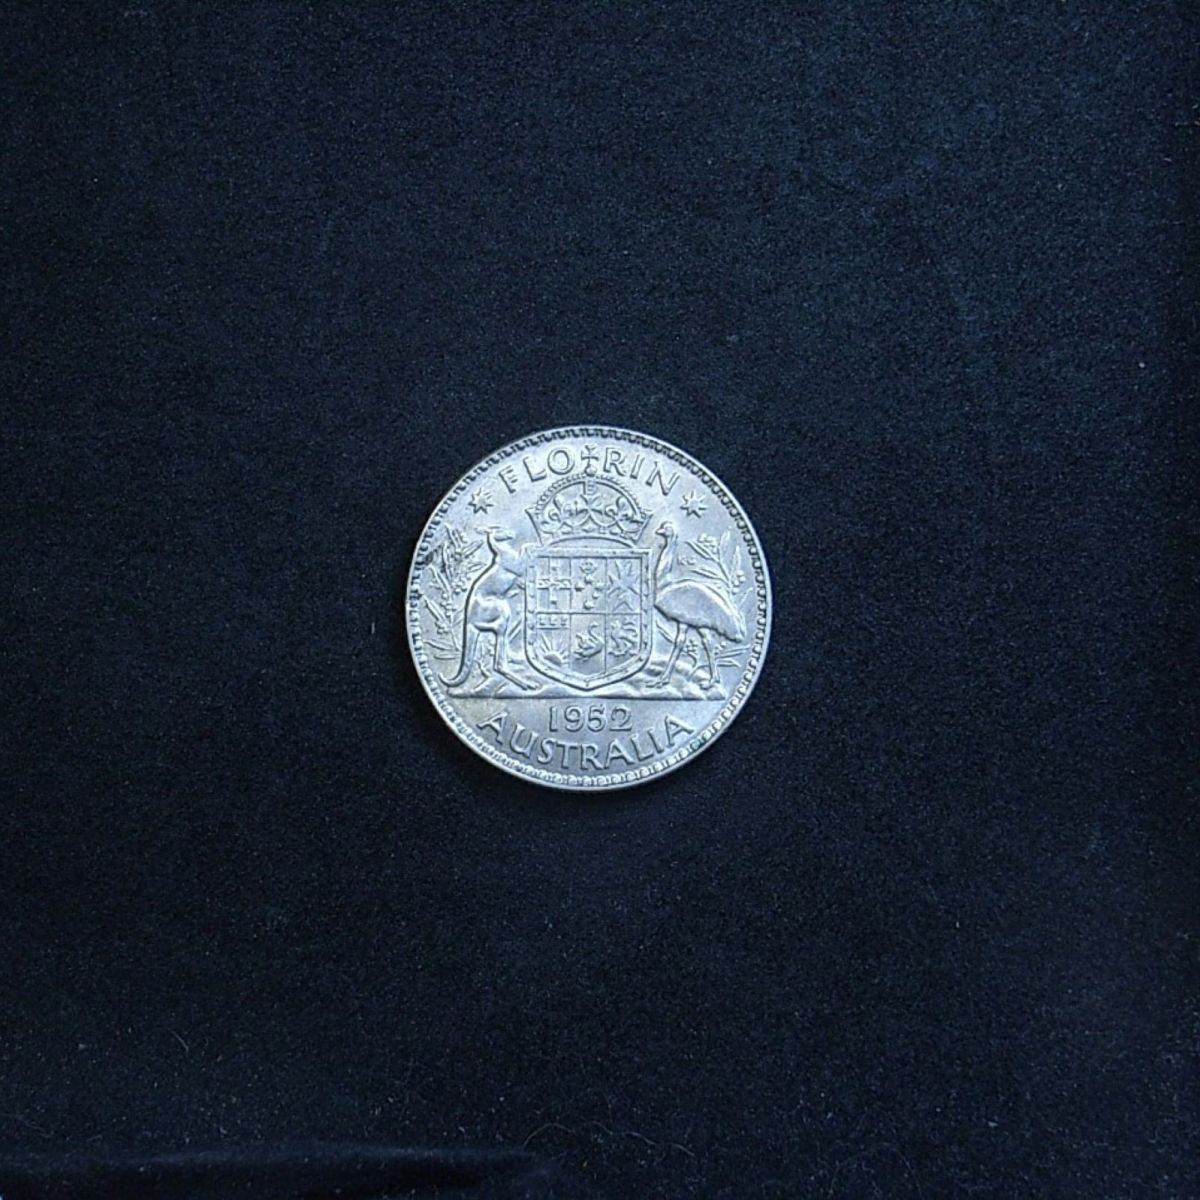 Aussie 1952 florin reverse showing the coin's lustre